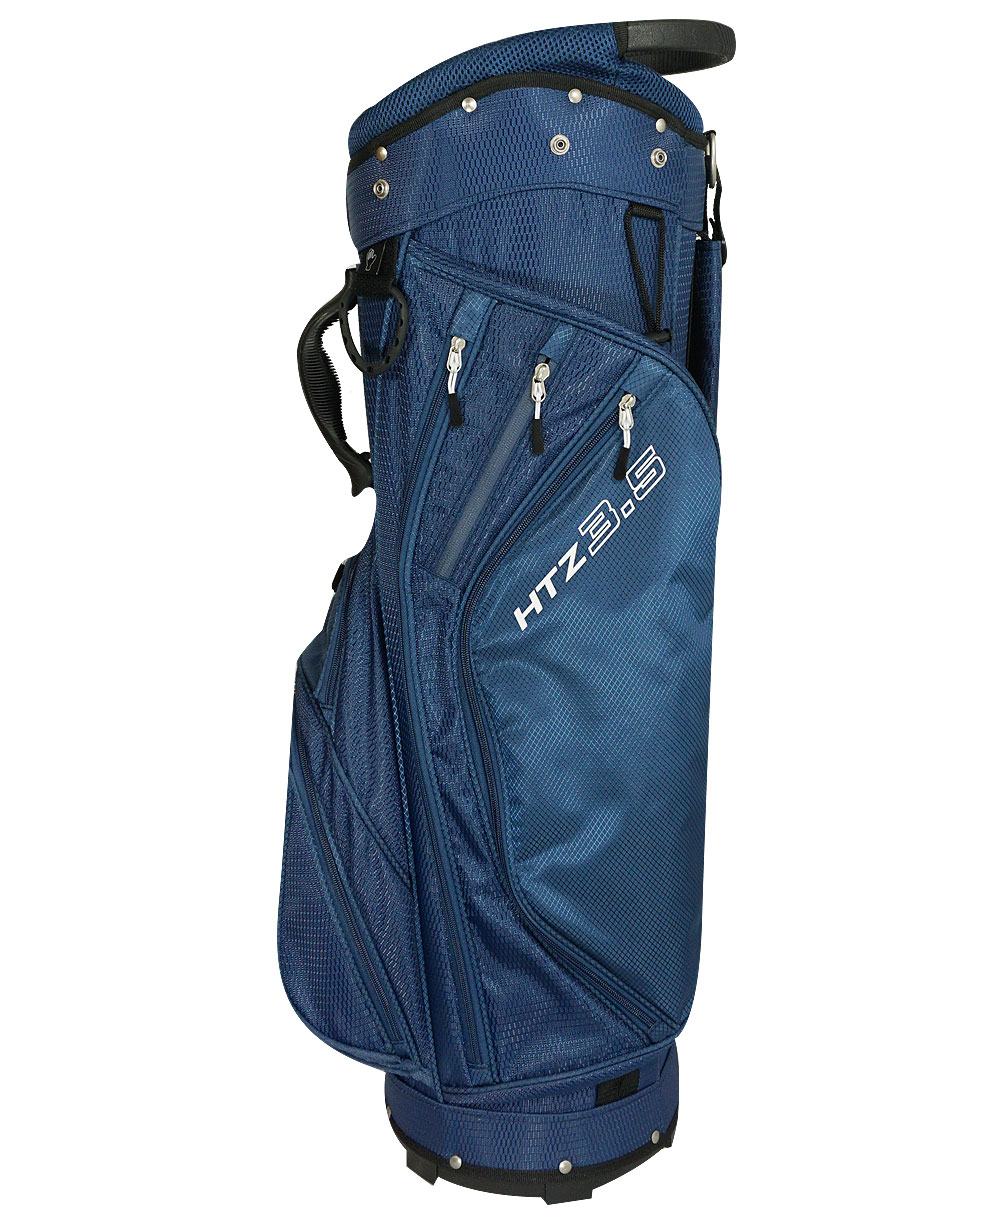 Hot-Z Golf 2017 3.5 Cart Bag